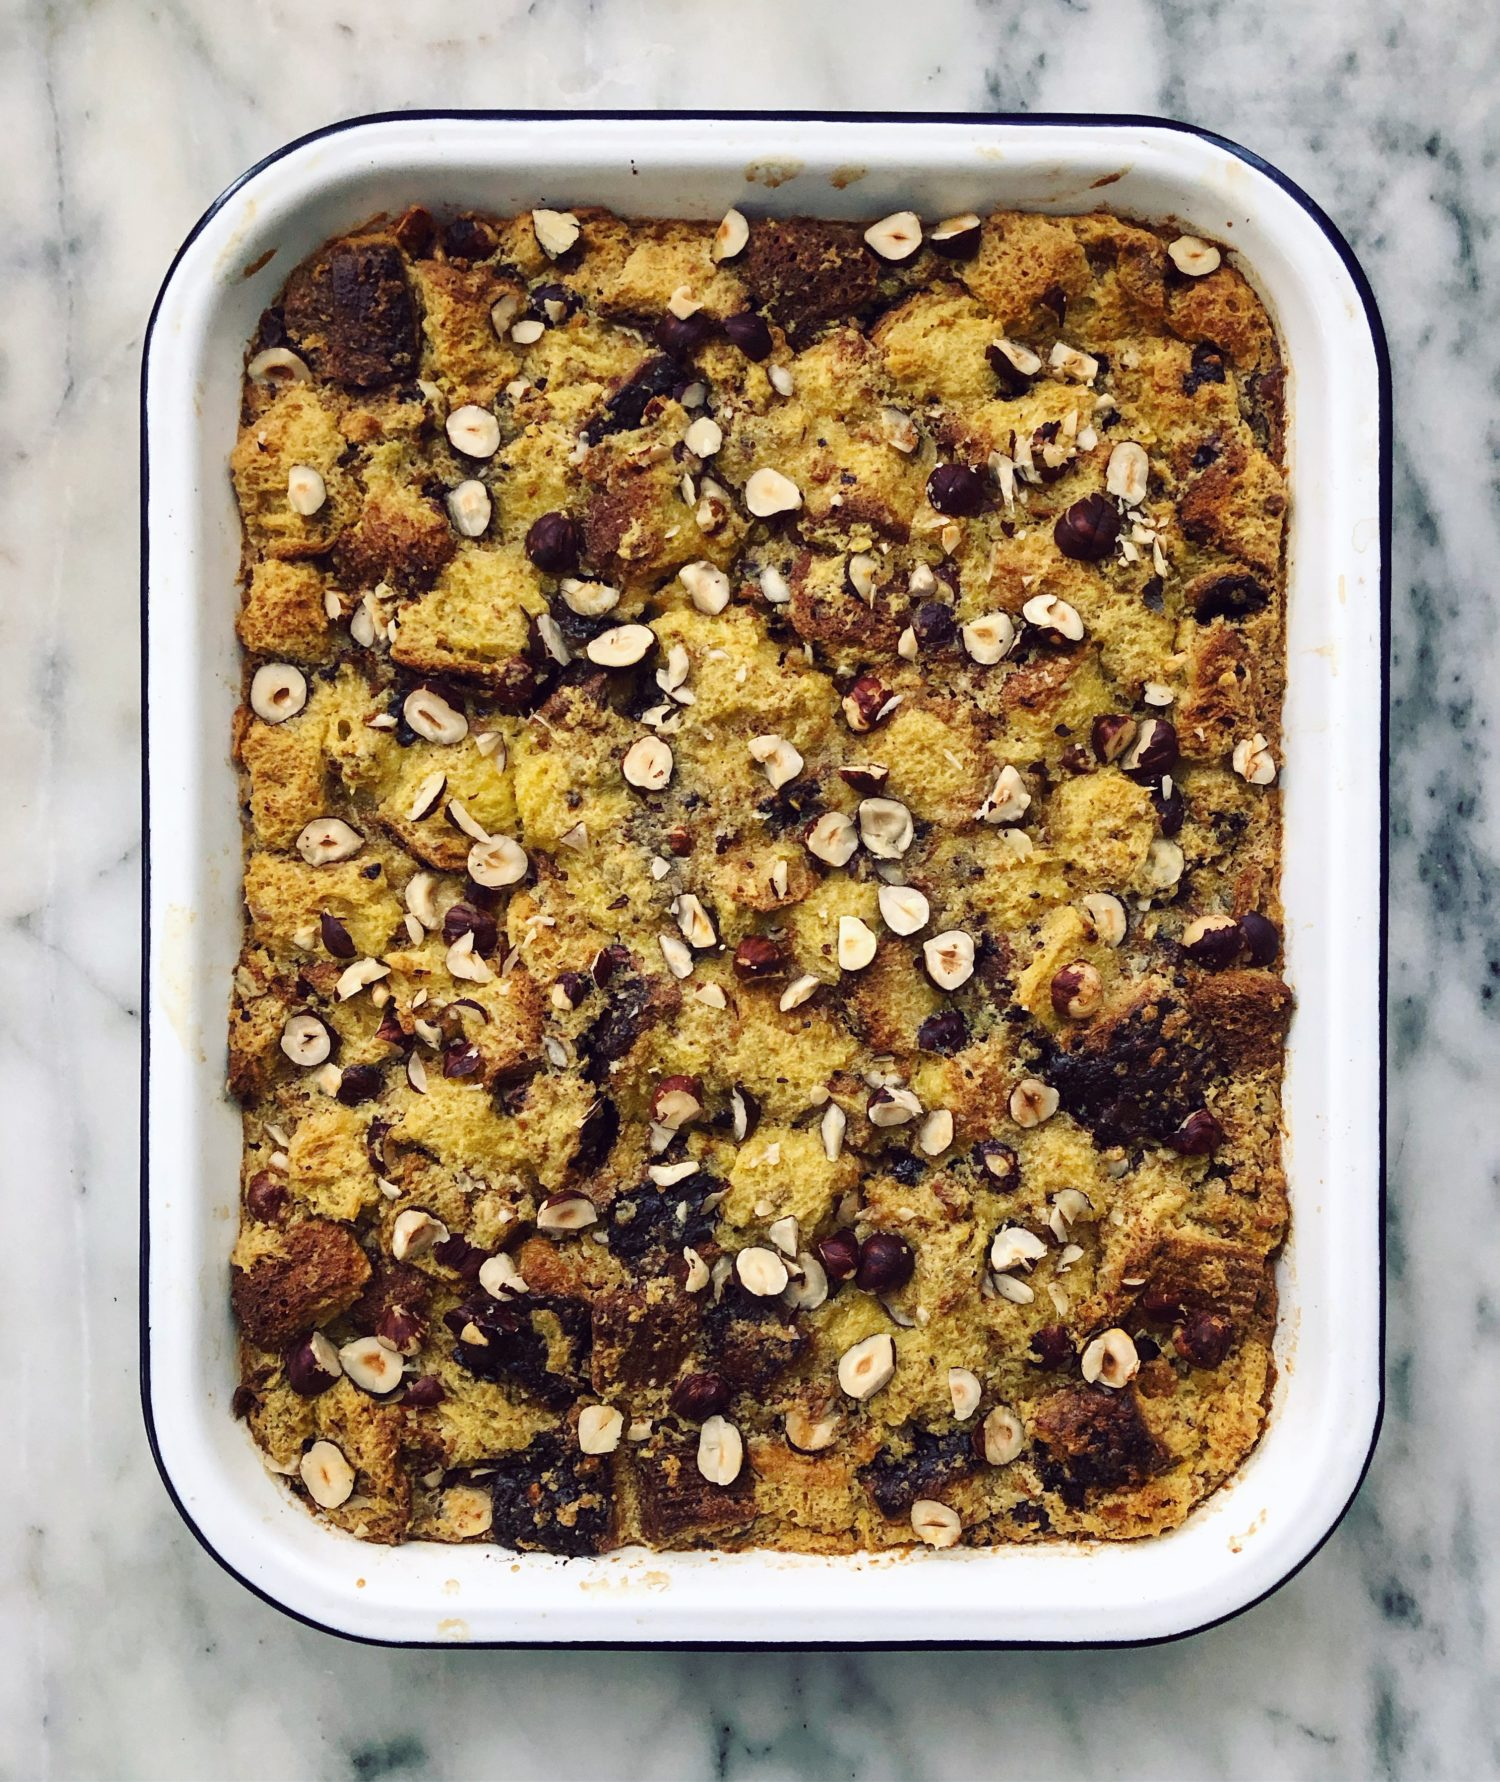 Bread Pudding with Chocolate Chunks and Hazelnuts